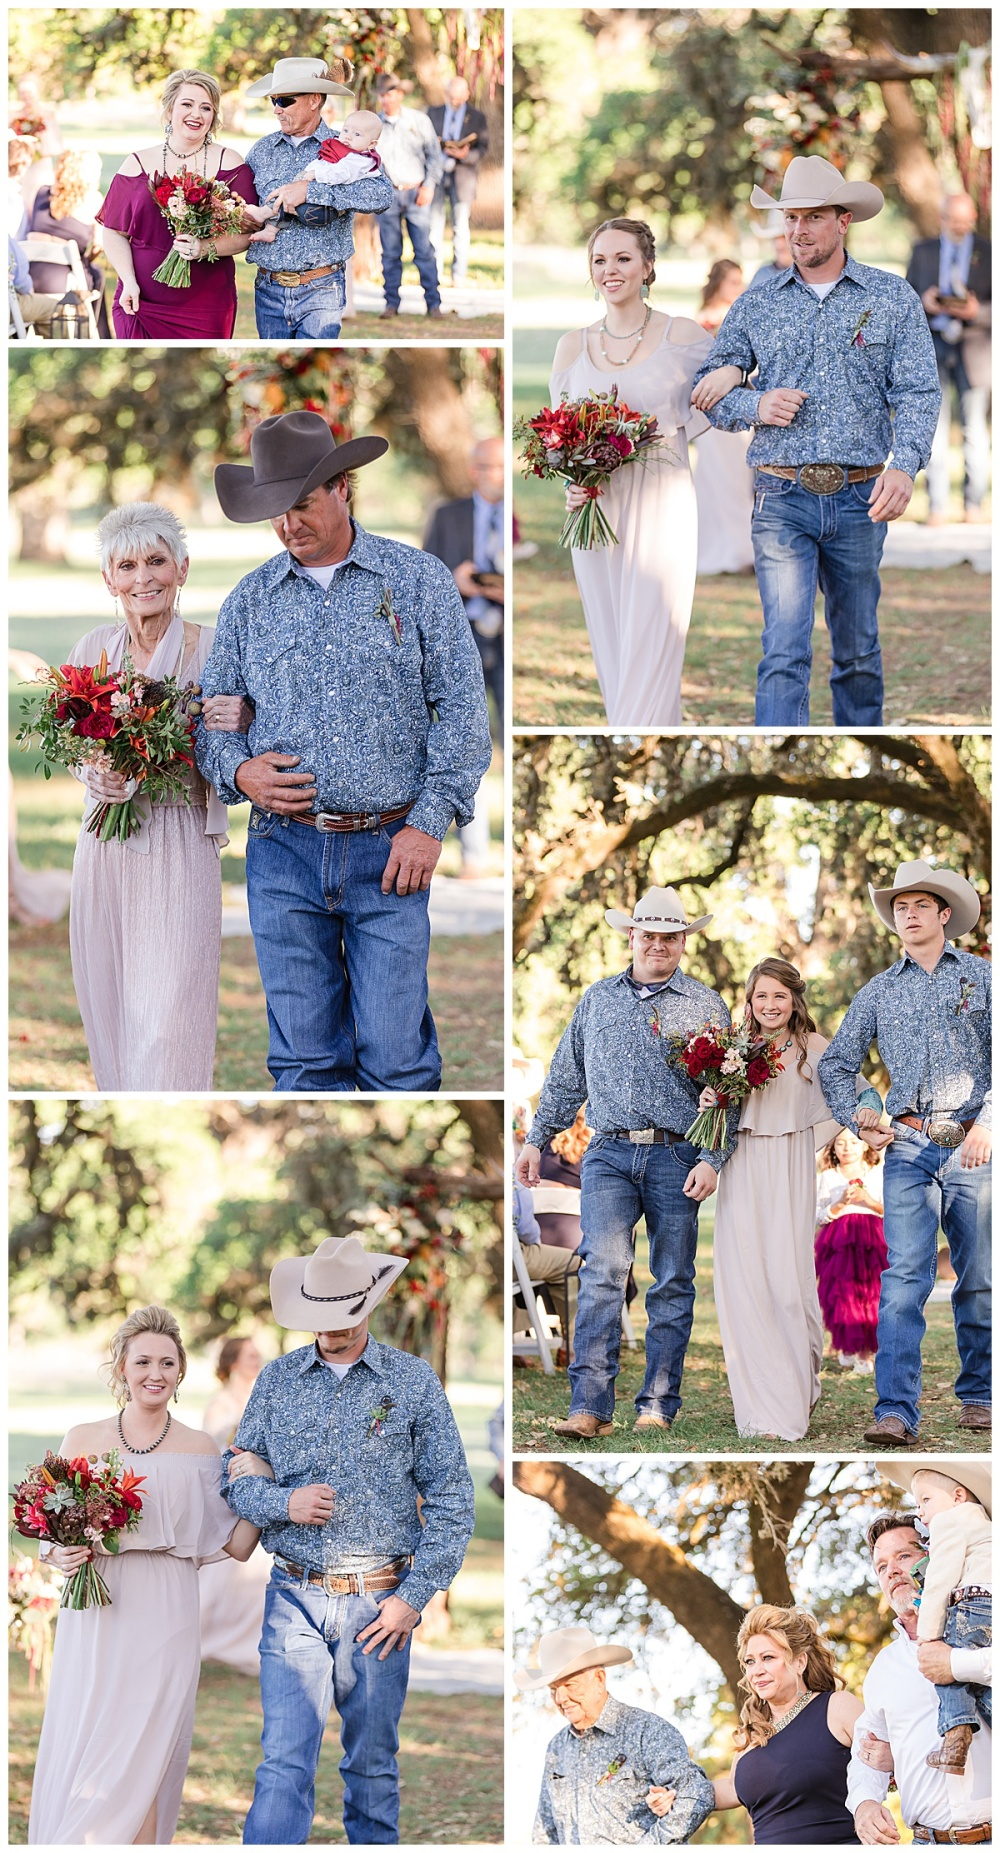 Eagle-Dancer-Ranch-Boerne-Texas-Wedding-Party-Barn-Carly-Barton-Photography_0026.jpg